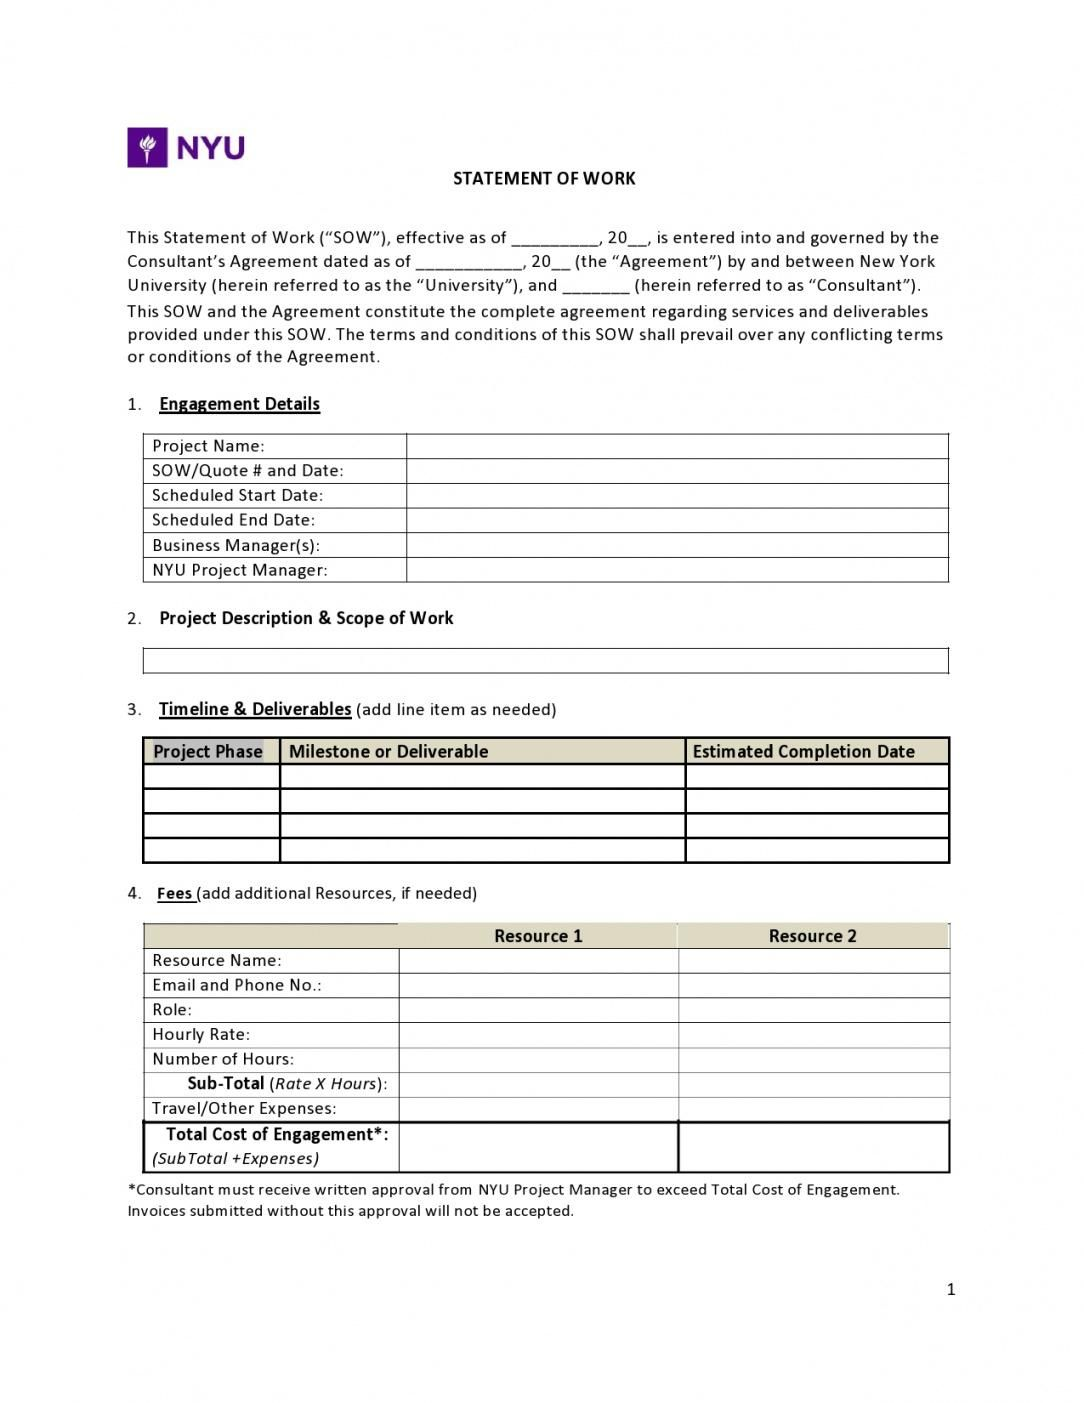 Get Our Example Of Marketing Statement Of Work Template Swot Analysis Template Statement Of Work Statement Template